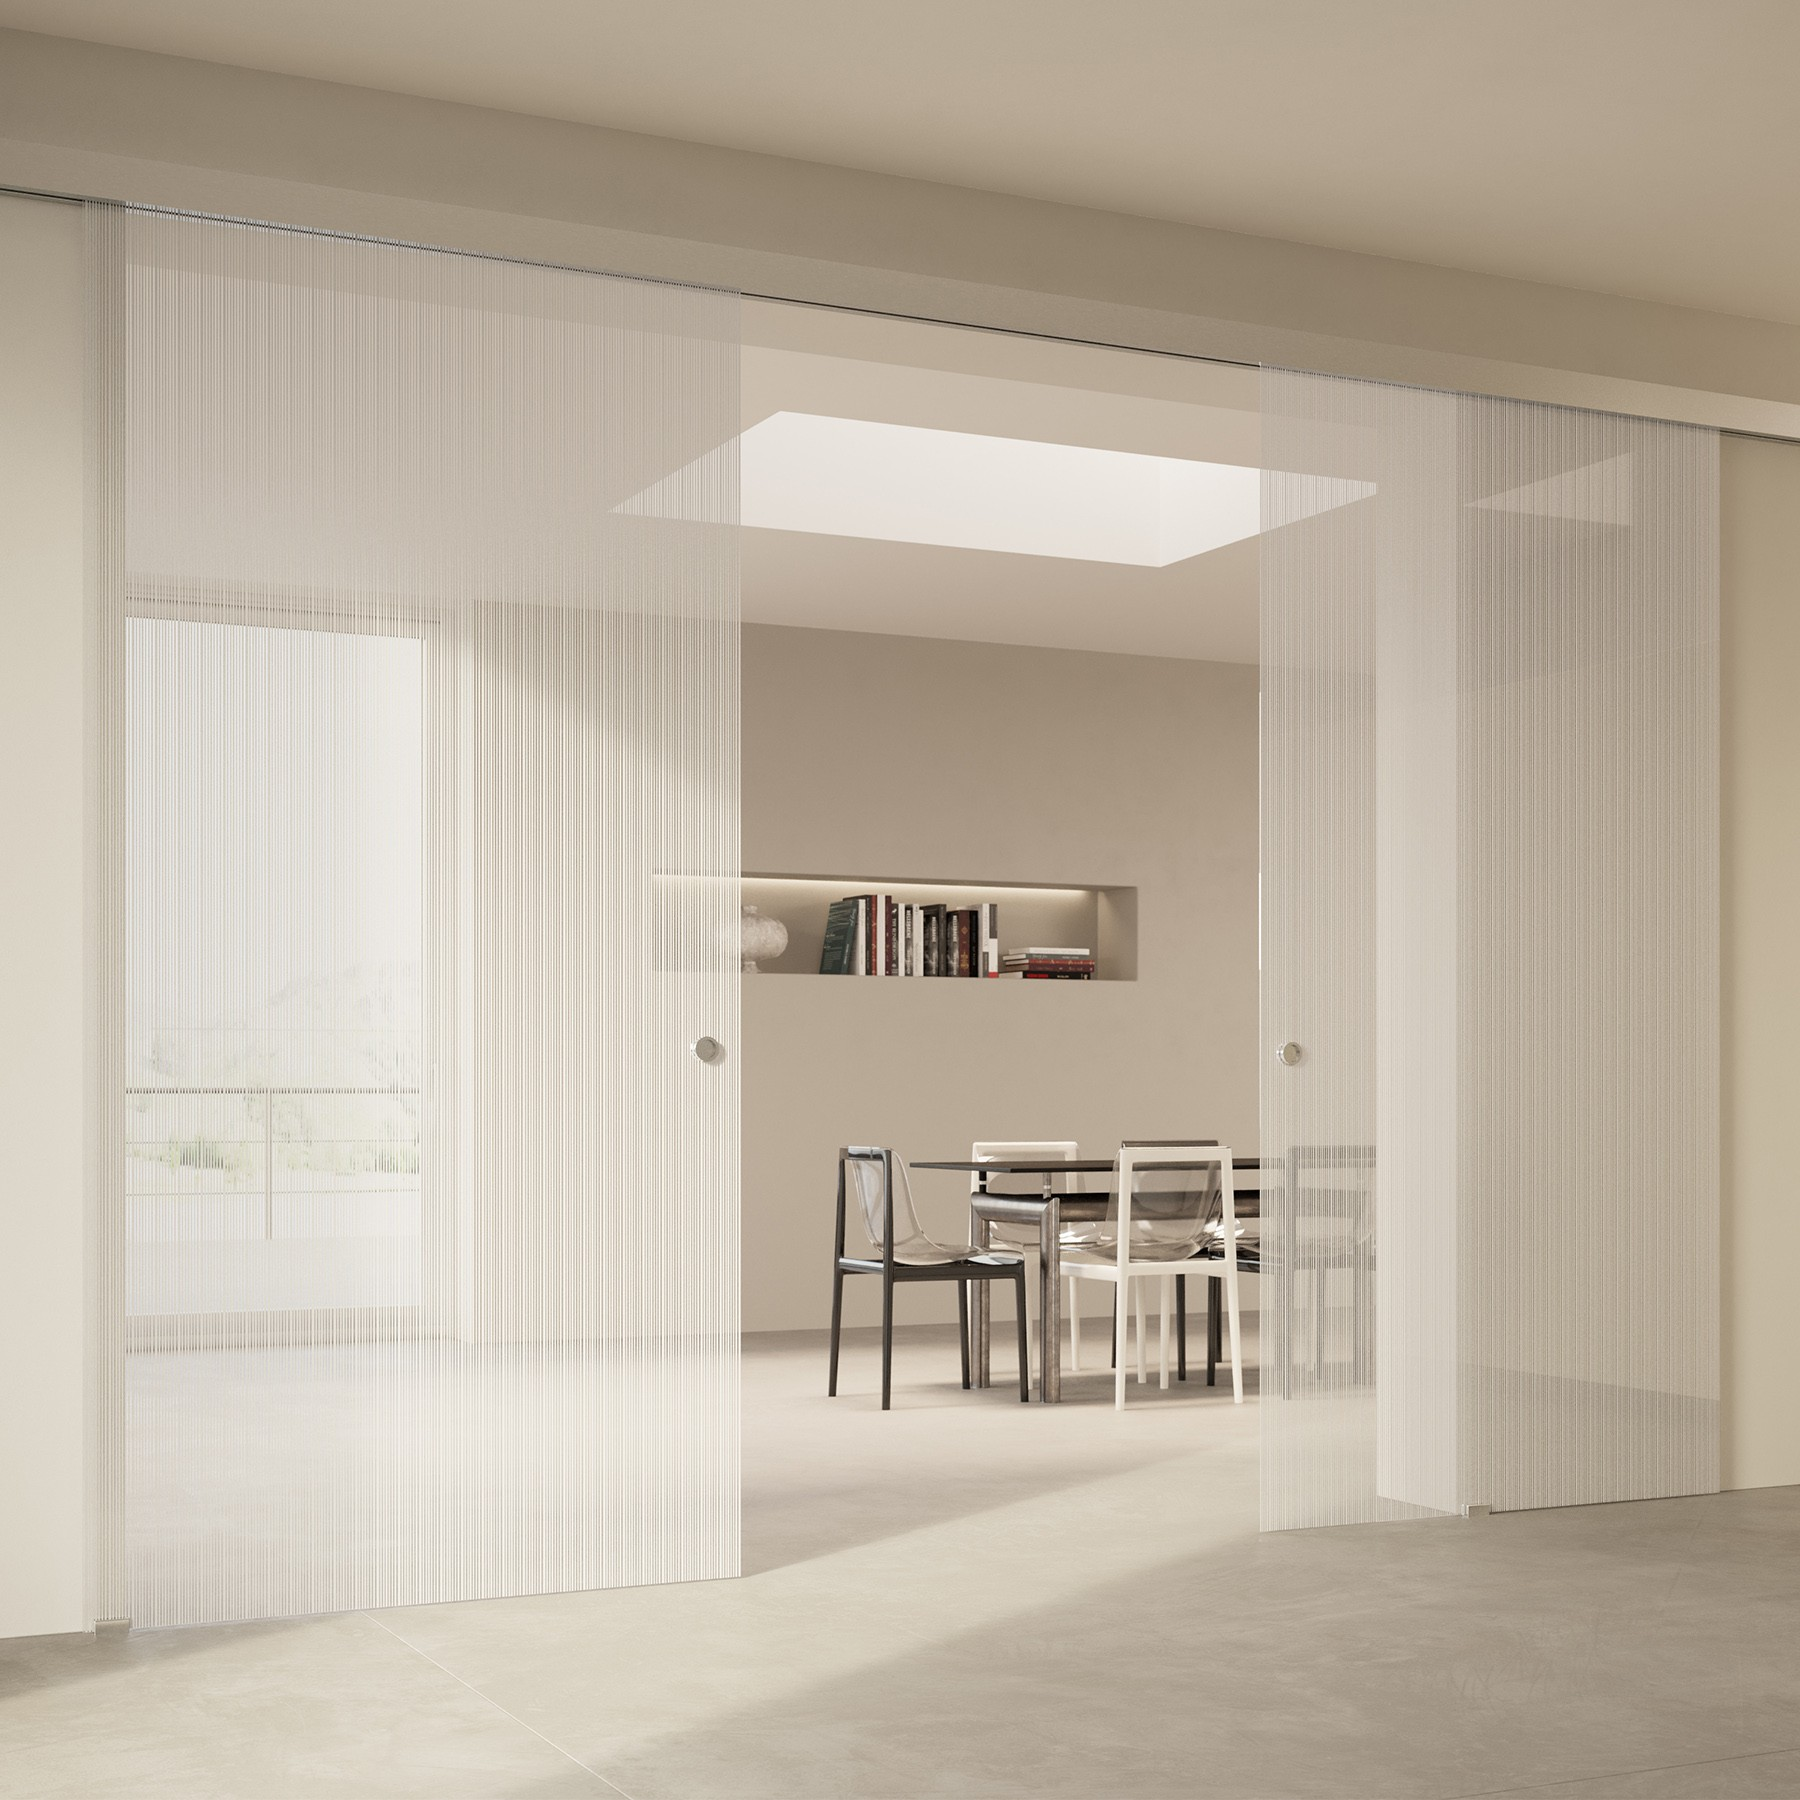 Scenario Visio with Strip transparent extraclear glass